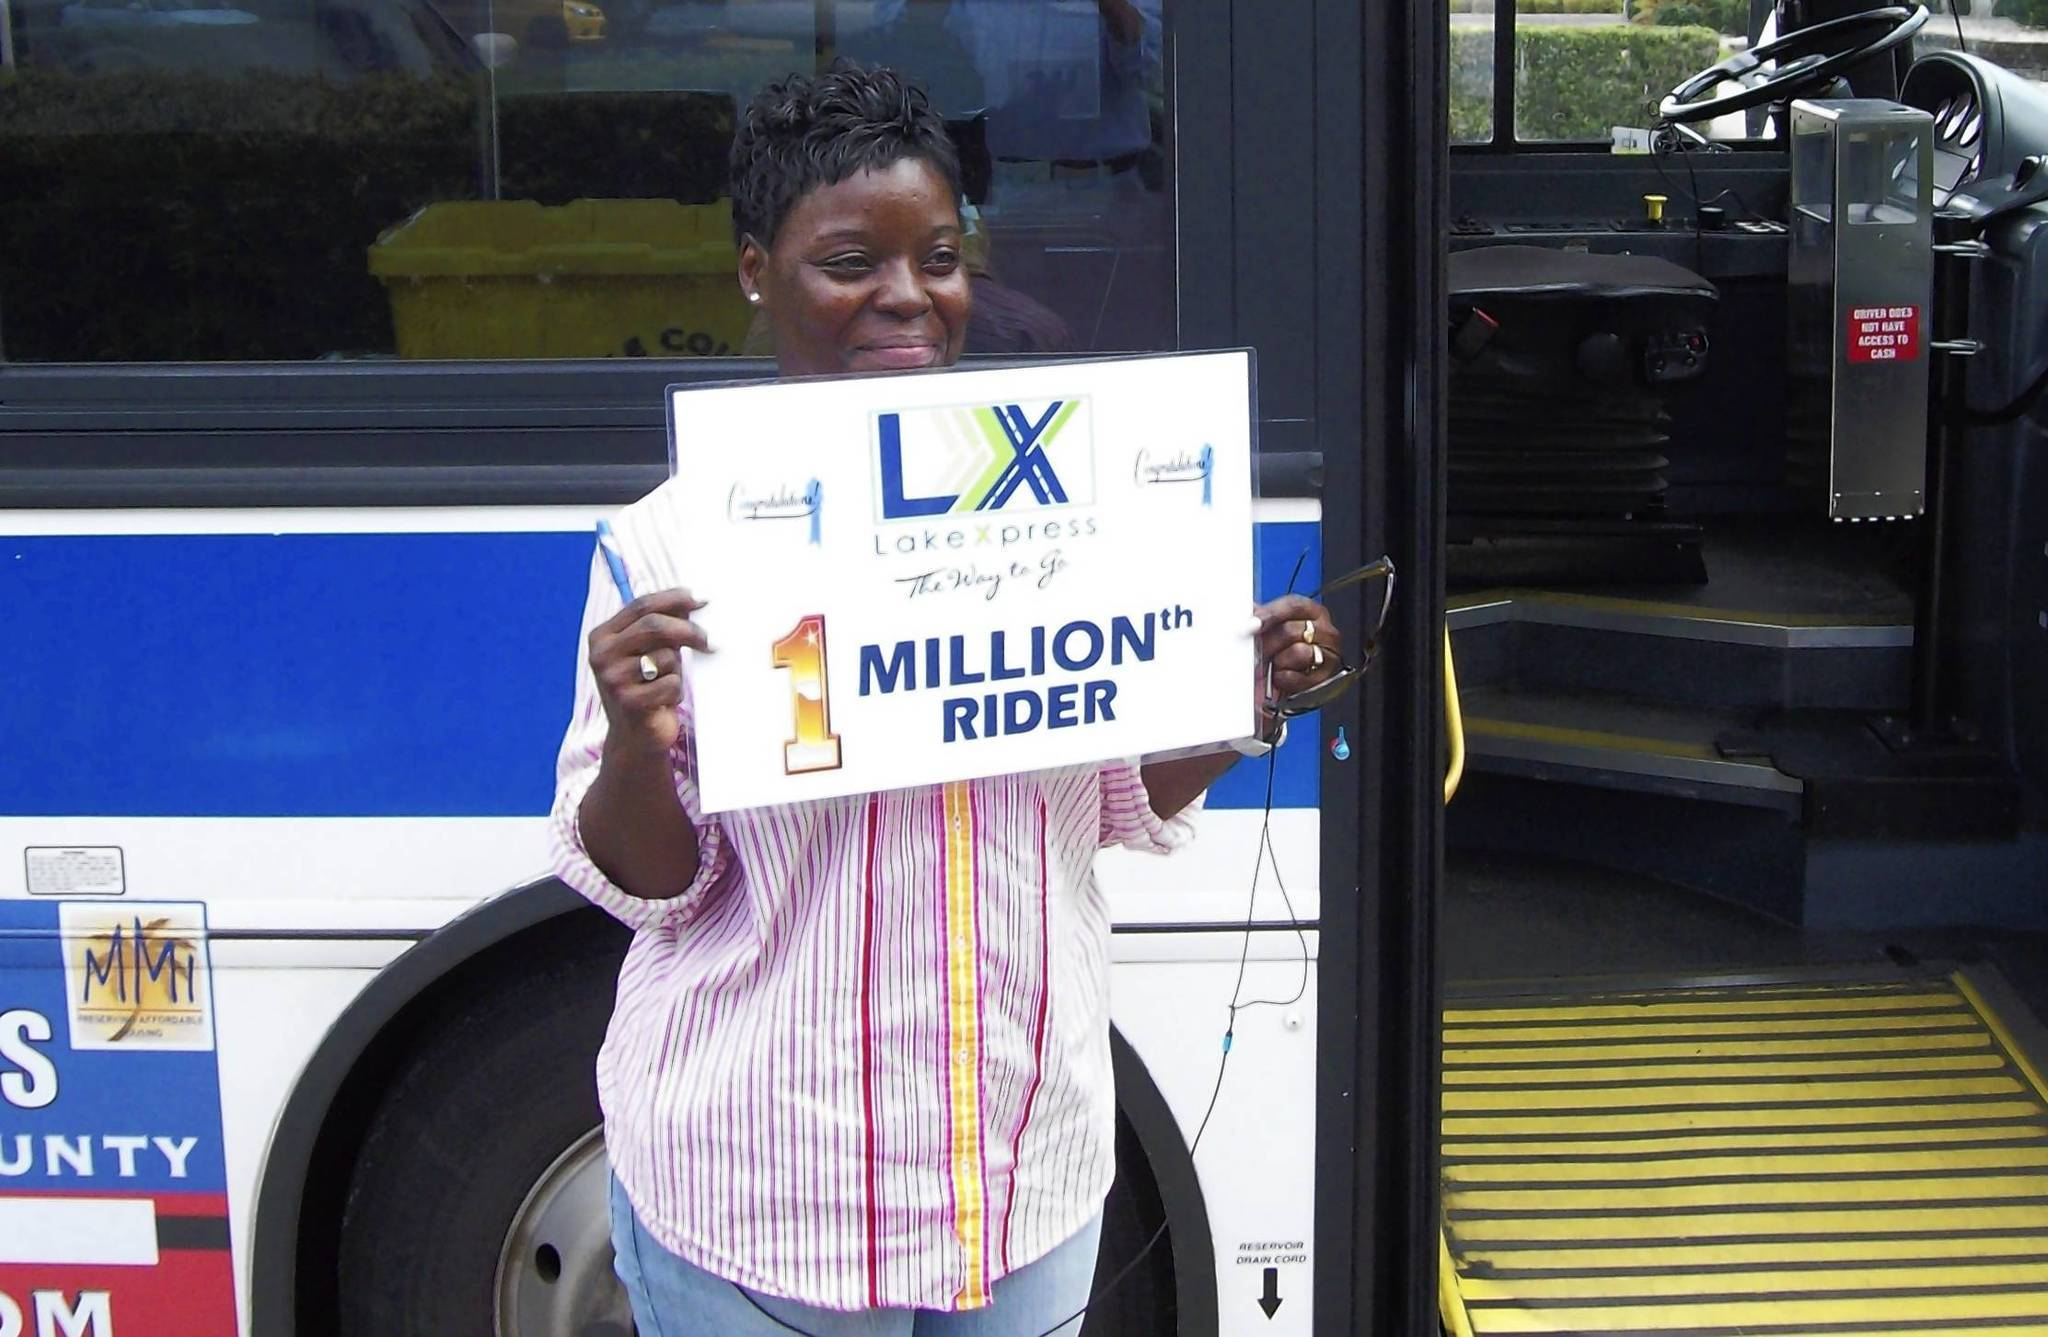 Leesburg resident Debbie Turner will receive free rides aboard LakeXpress for a year for being the transit services 1 millionth rider.